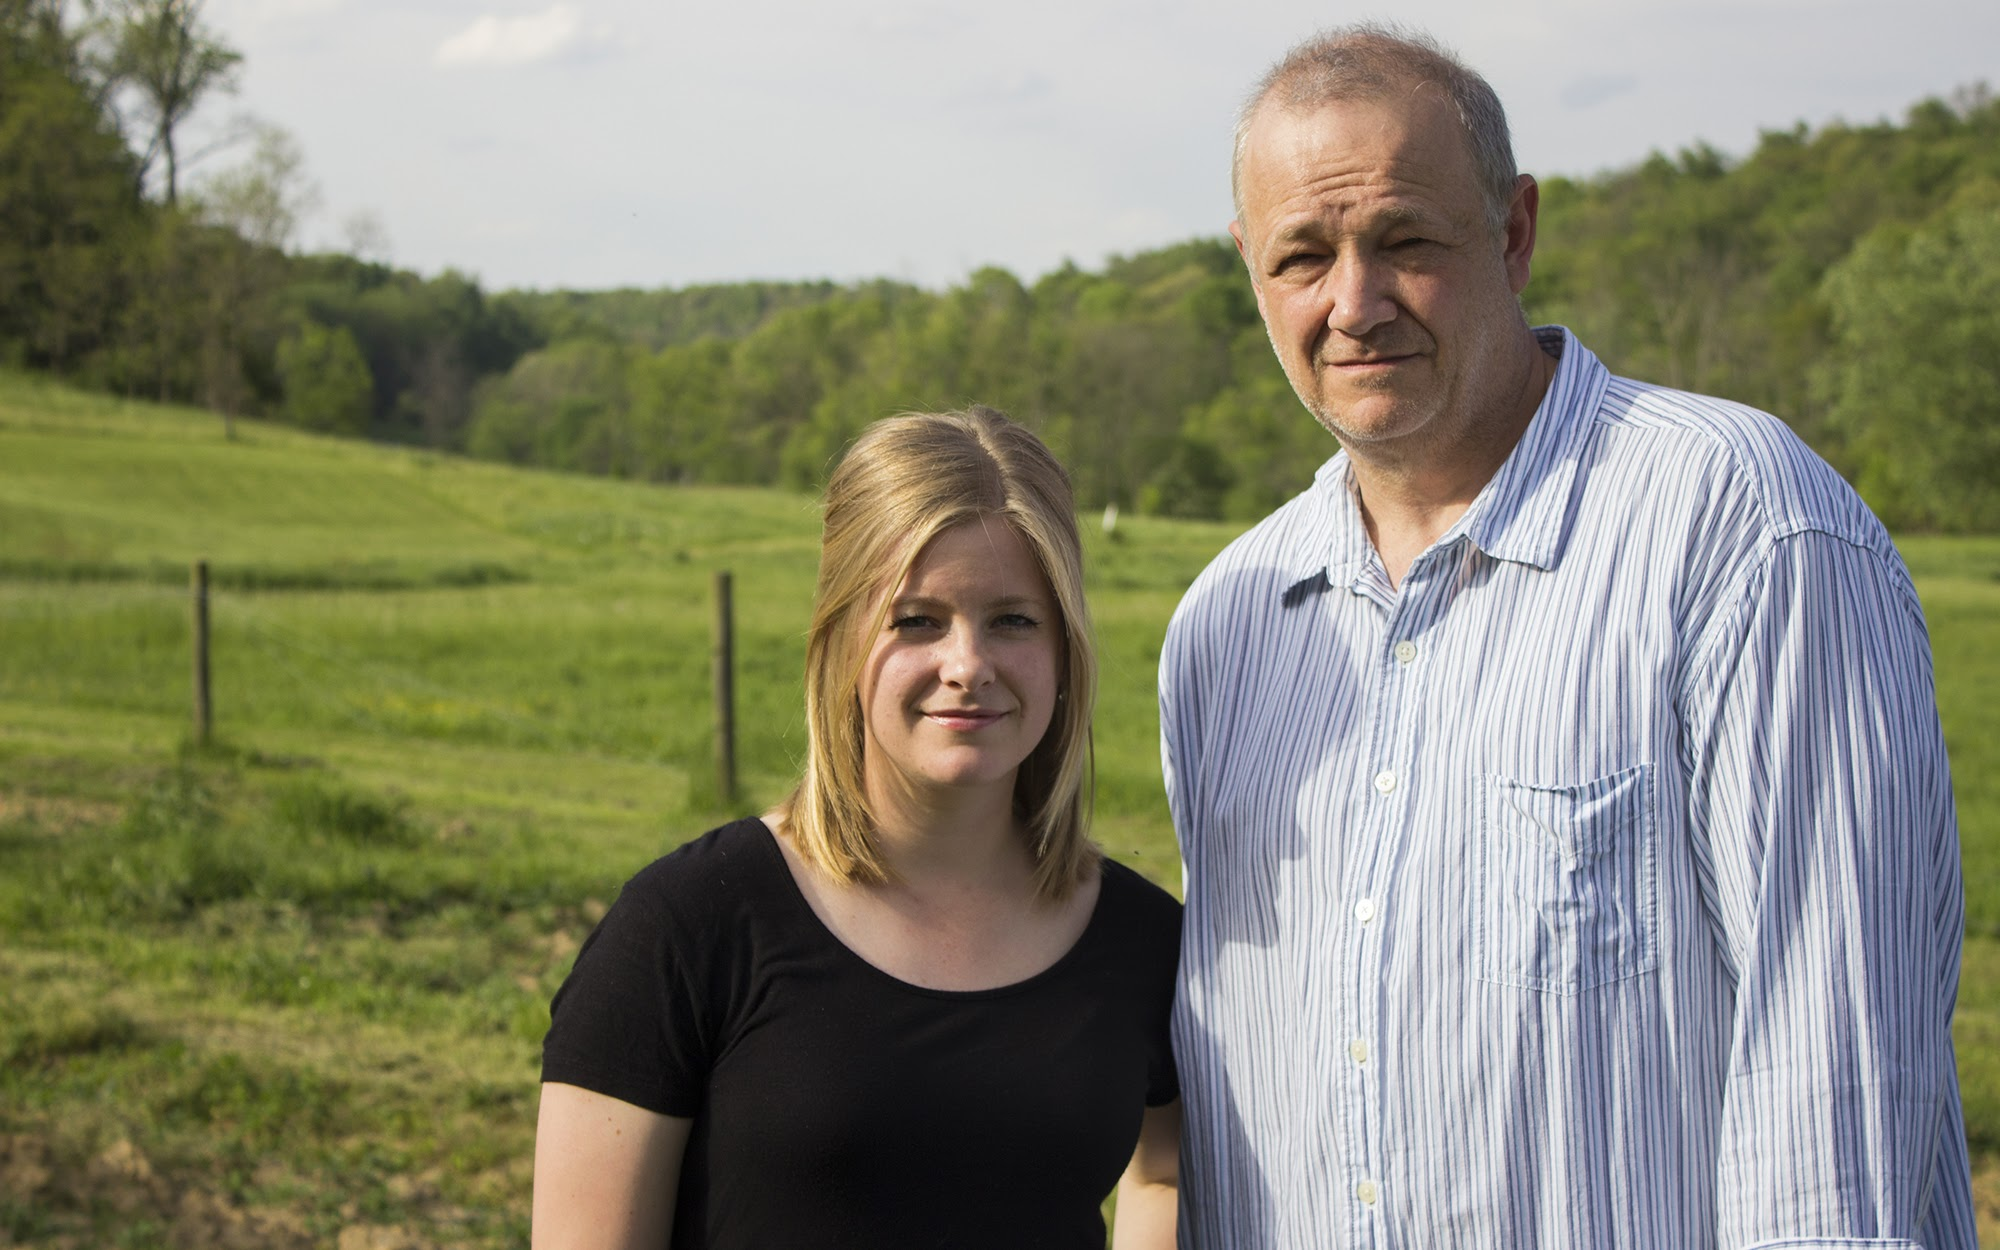 Sarah Rebitch, 26, and her father Ed Rebitch, 58, stand on their 150-acre property in Salem Township, located just outside of Delmont Borough. (Photo by Molly Duerig/PublicSource)